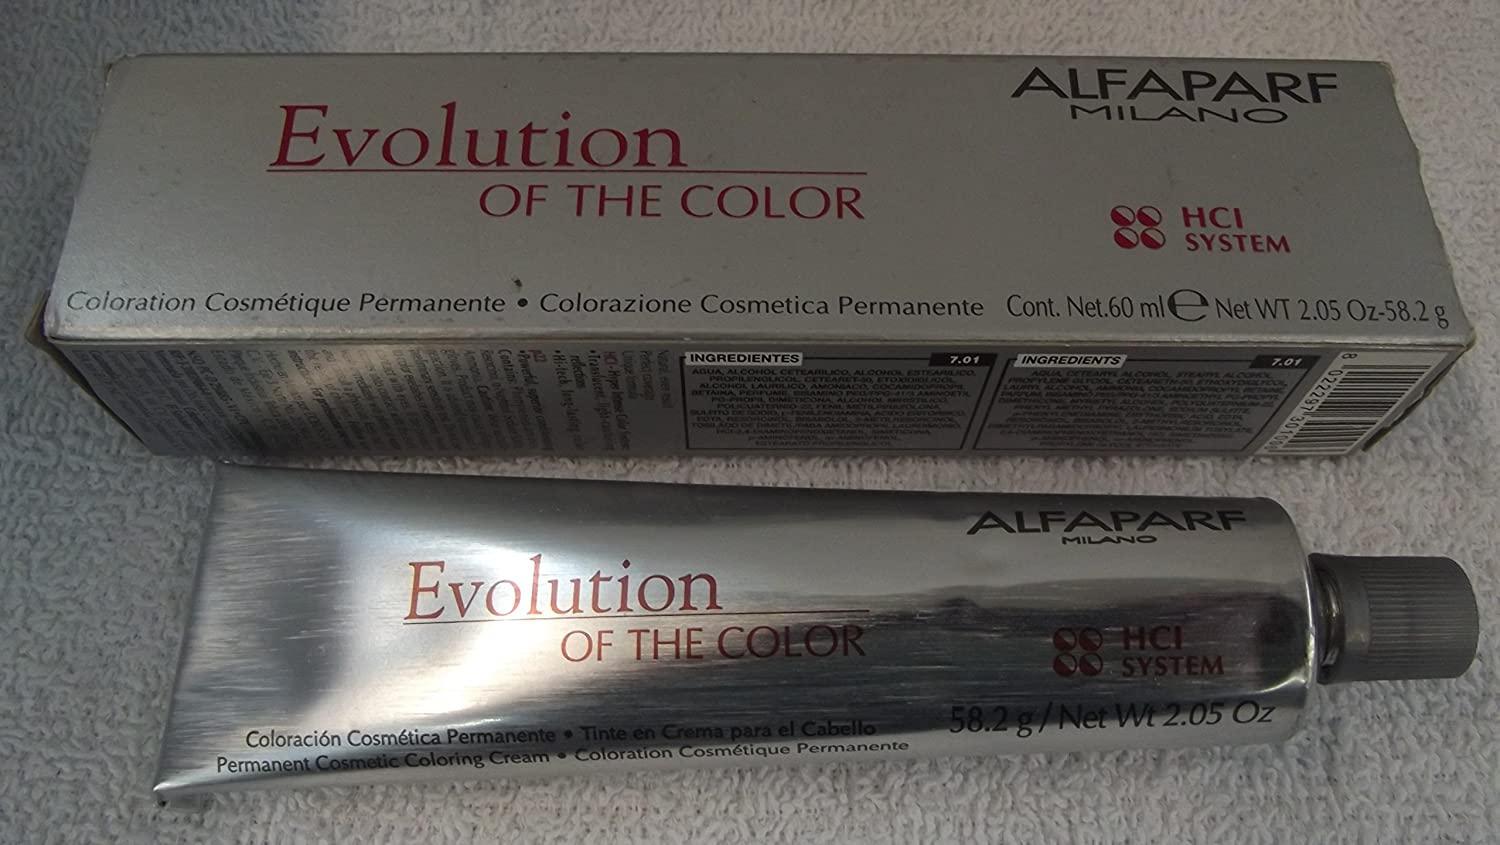 Alfaparf chemical hair dyes evolution of the color 901 very alfaparf chemical hair dyes evolution of the color 901 very light natural ash blonde 205 ounce amazon beauty nvjuhfo Images